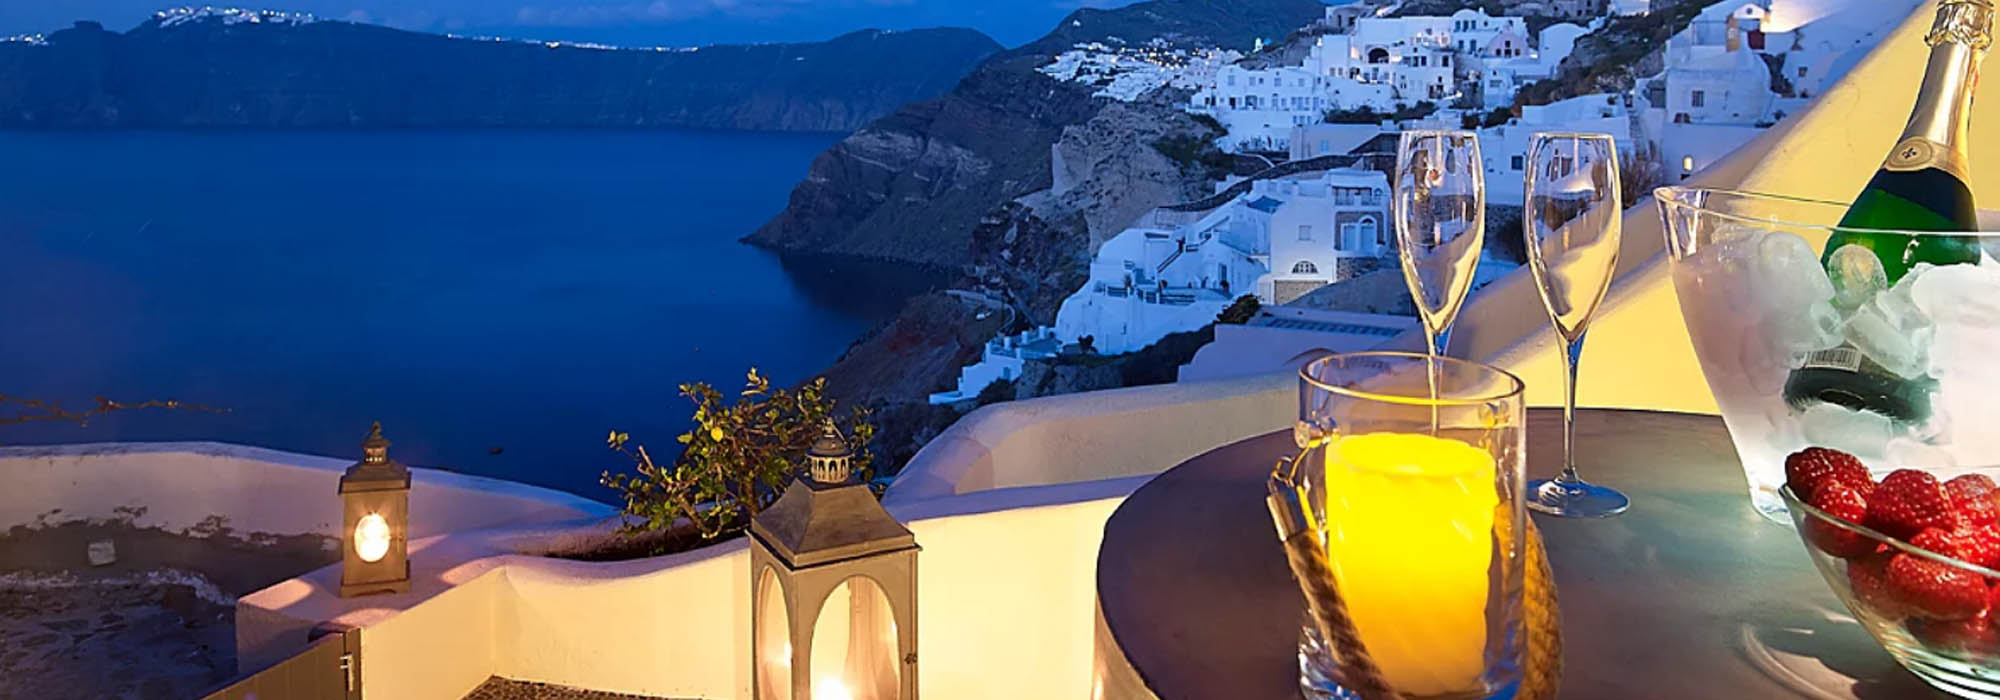 The best Cave Villa Santorini Oia 90 sq.meters, consist of 2 Cave Houses EXCLUSIVE